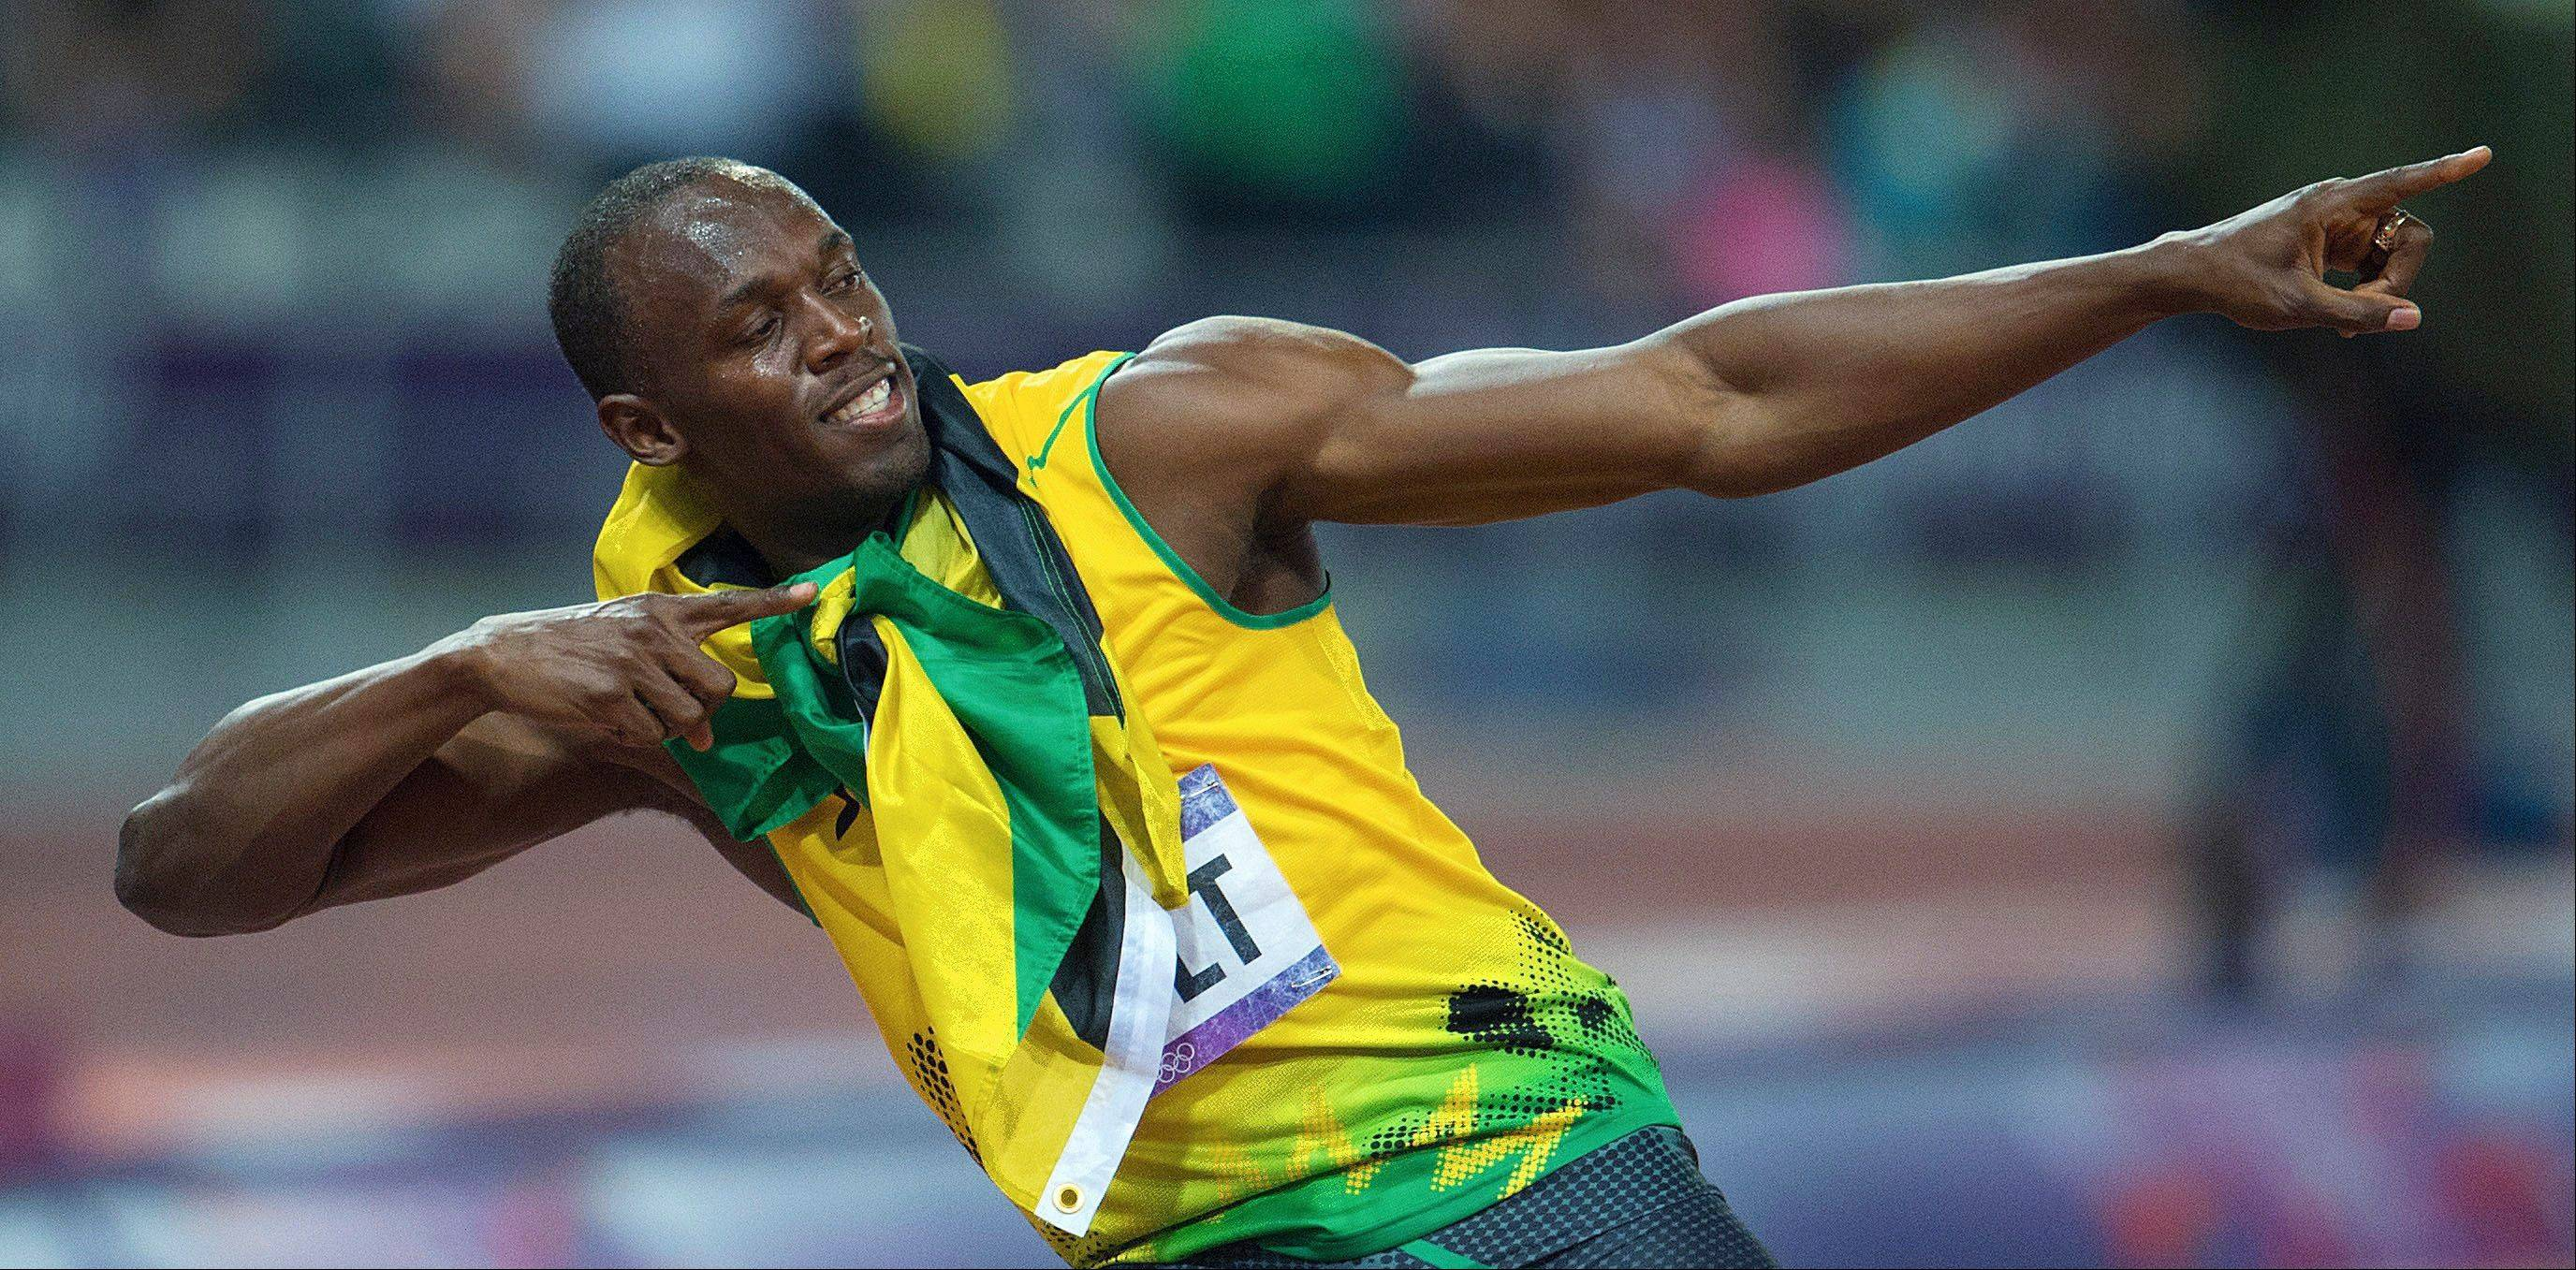 Jamaica�s Usain Bolt poses after his win in the men�s 200 meters at the Summer Olympics in London. Several Olympic sprinters have played in the NFL after successful careers on the track.